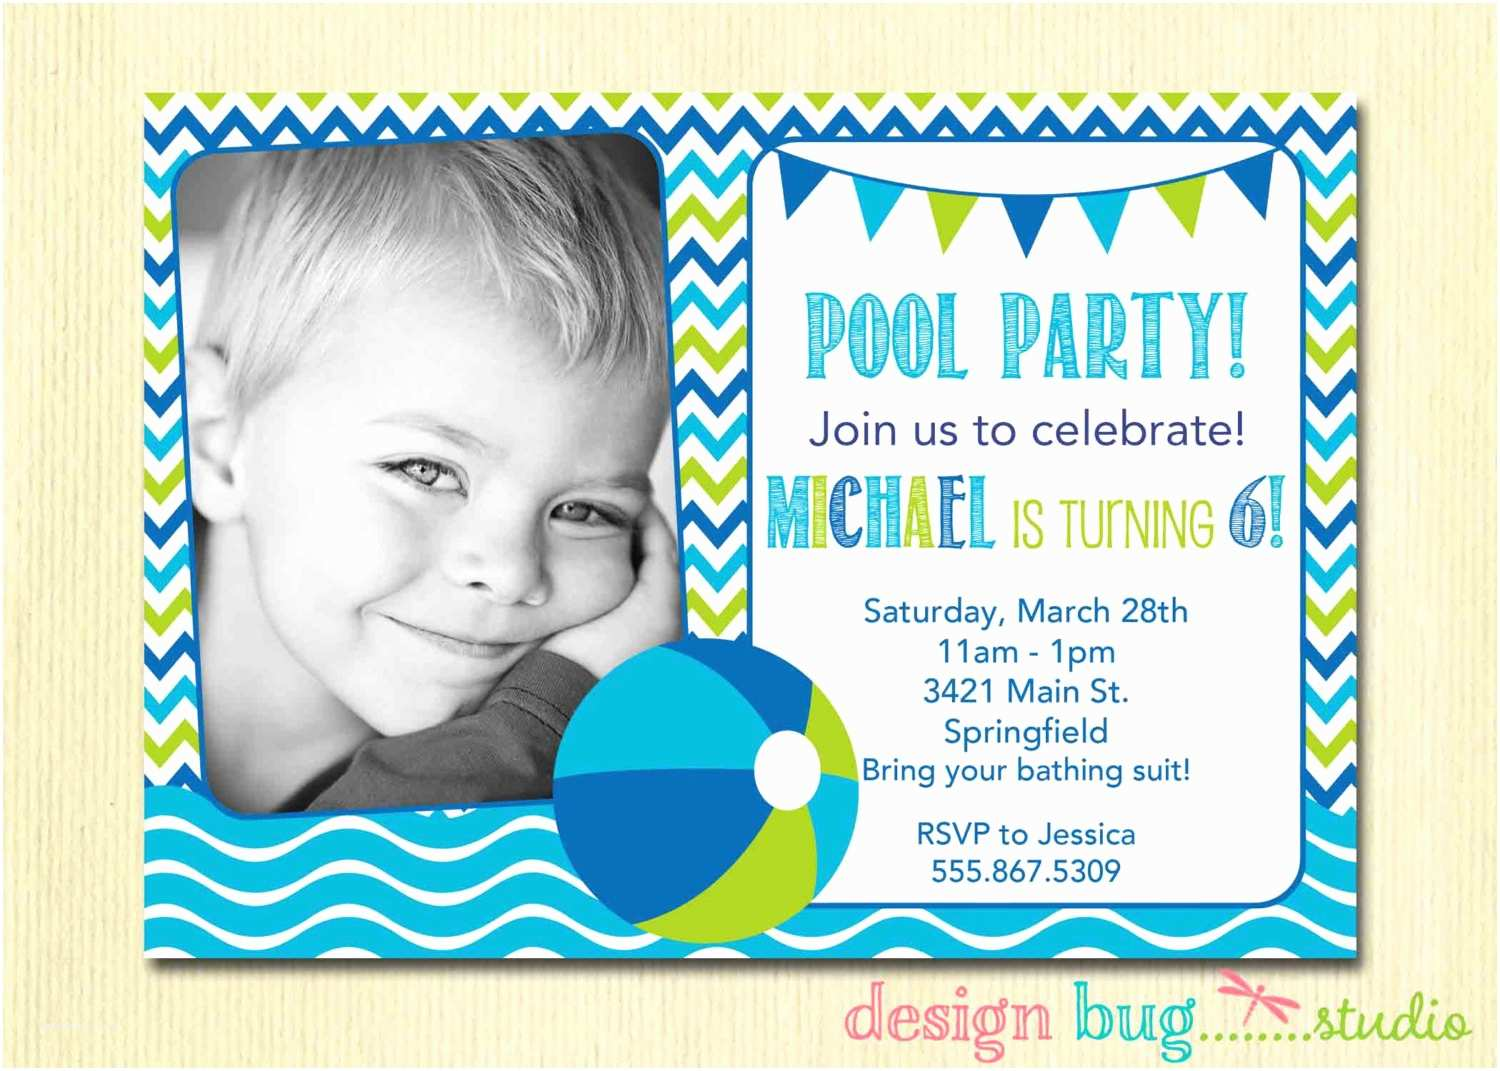 Cute Birthday Invitations Funny Beach and Pool Invitation Card Design Ideas to